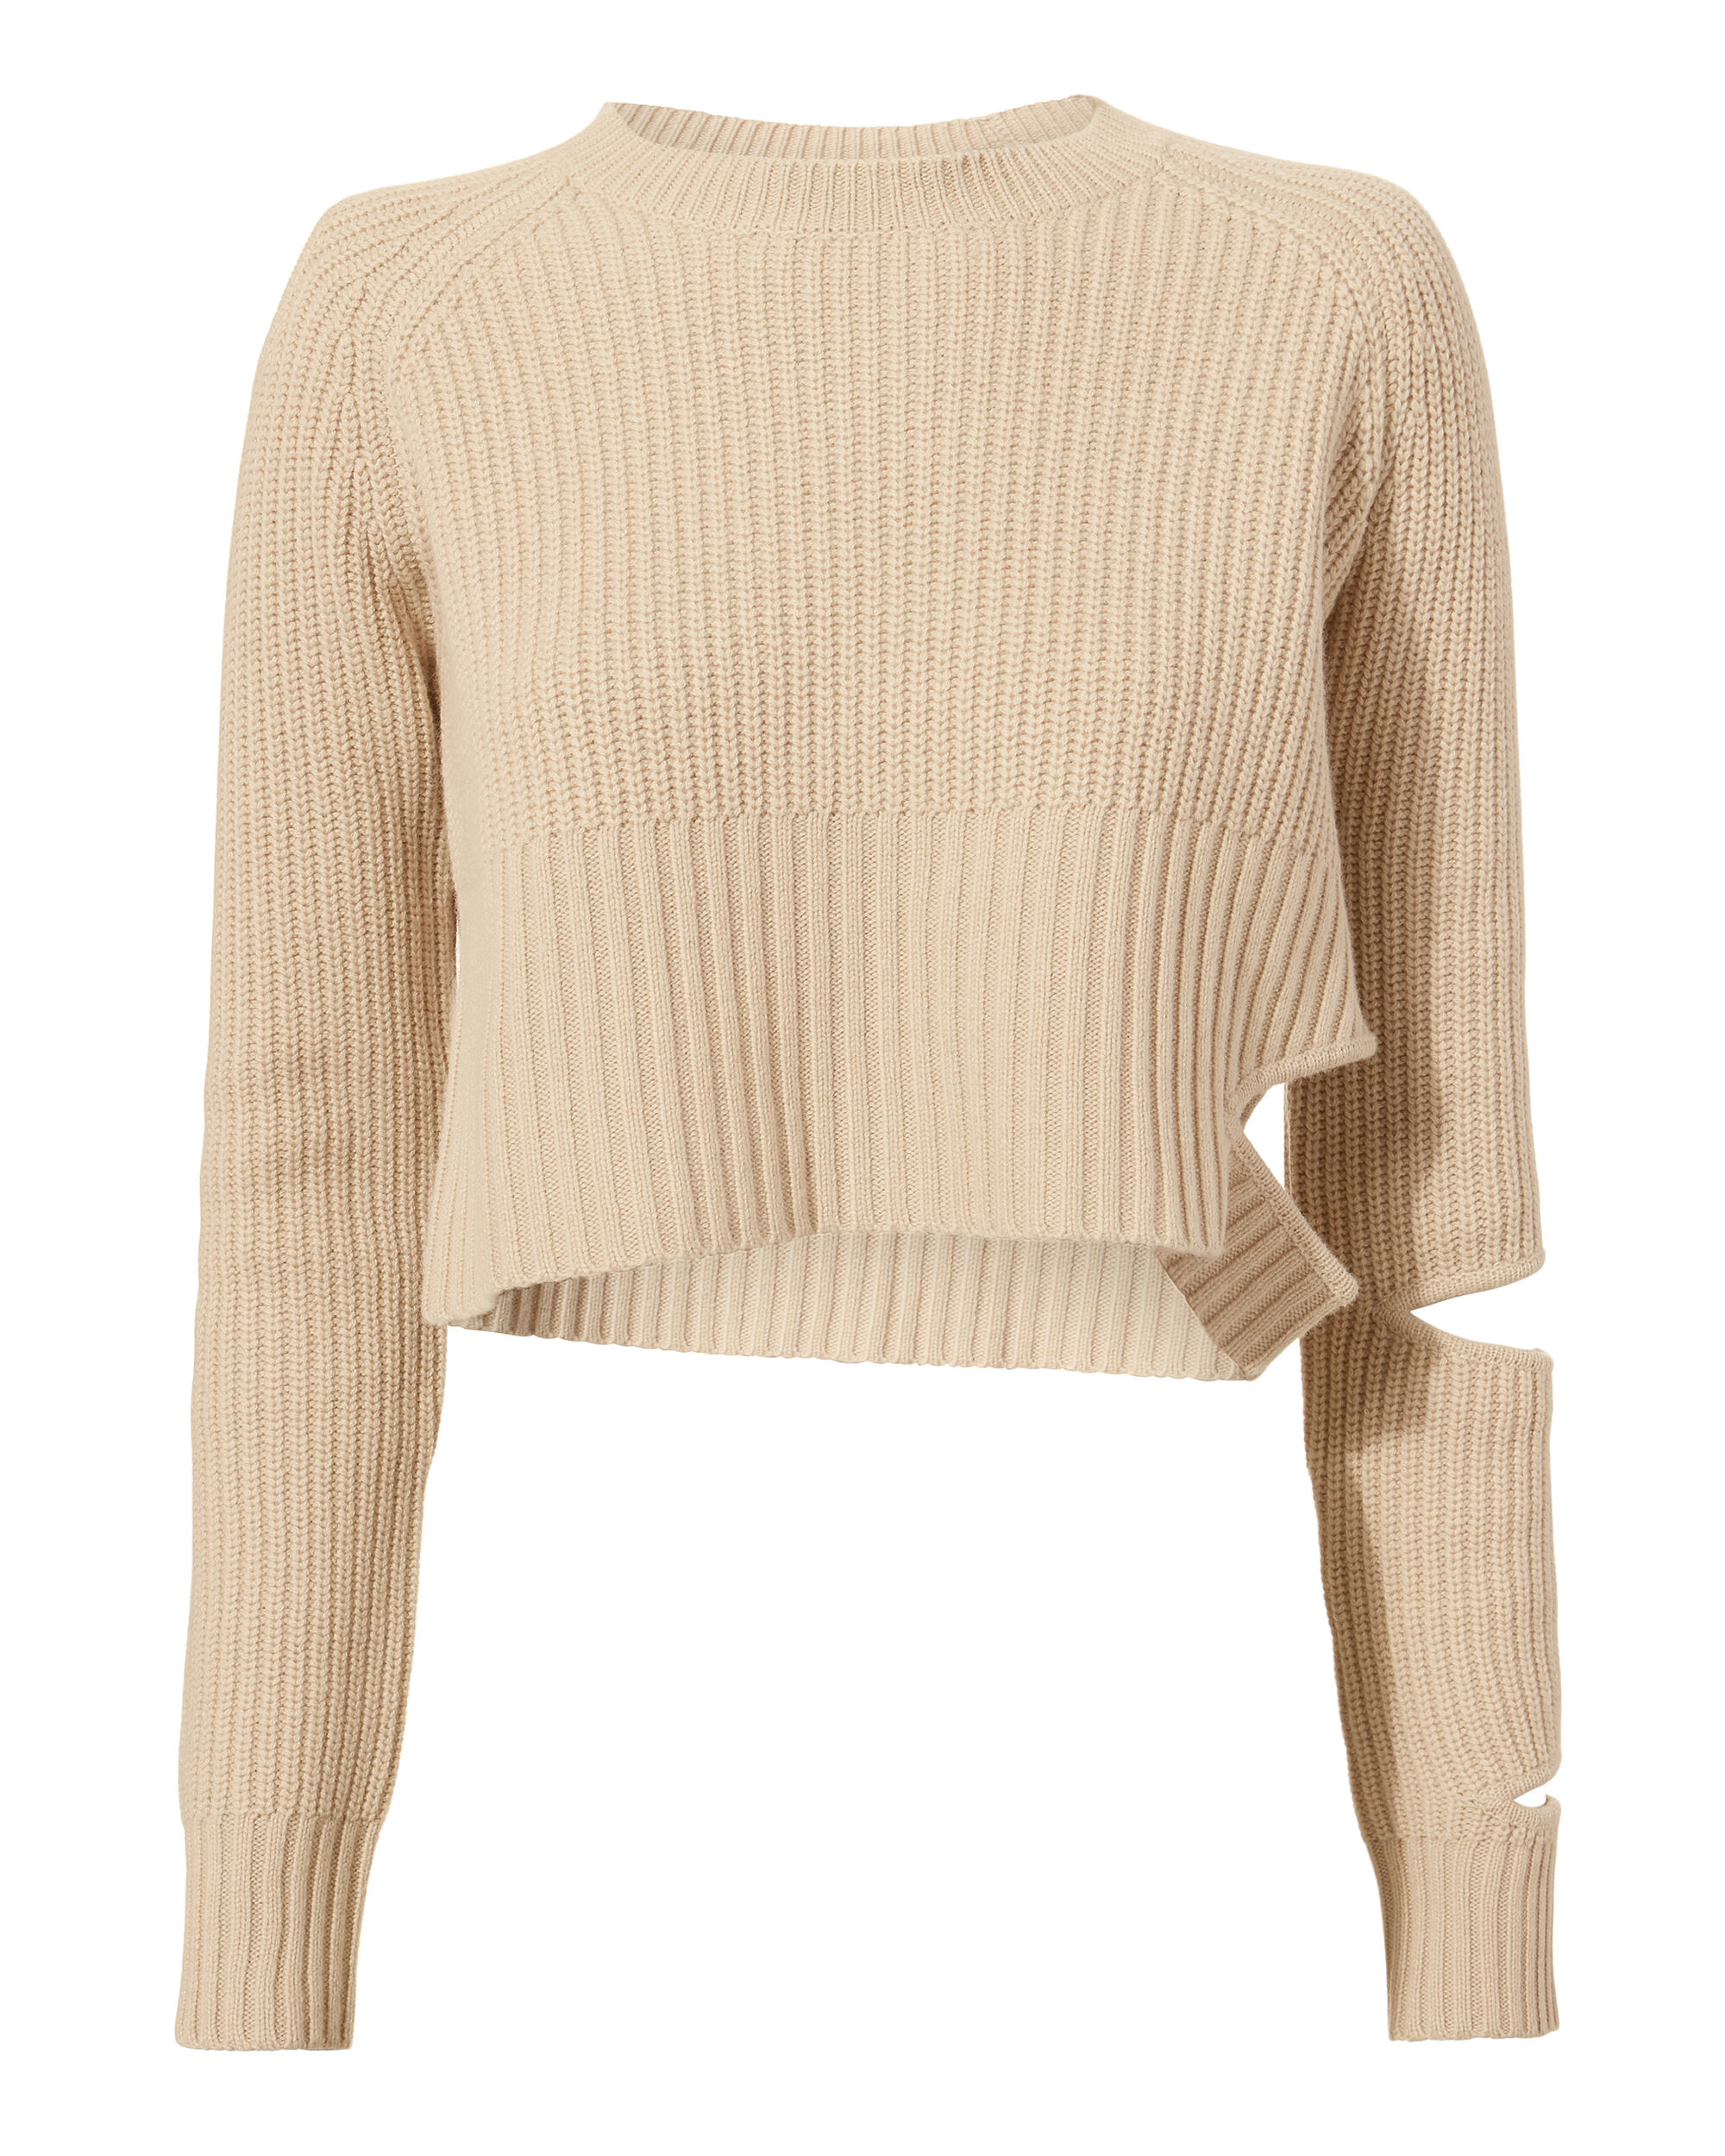 Akar Cropped Sweater, BEIGE, hi-res